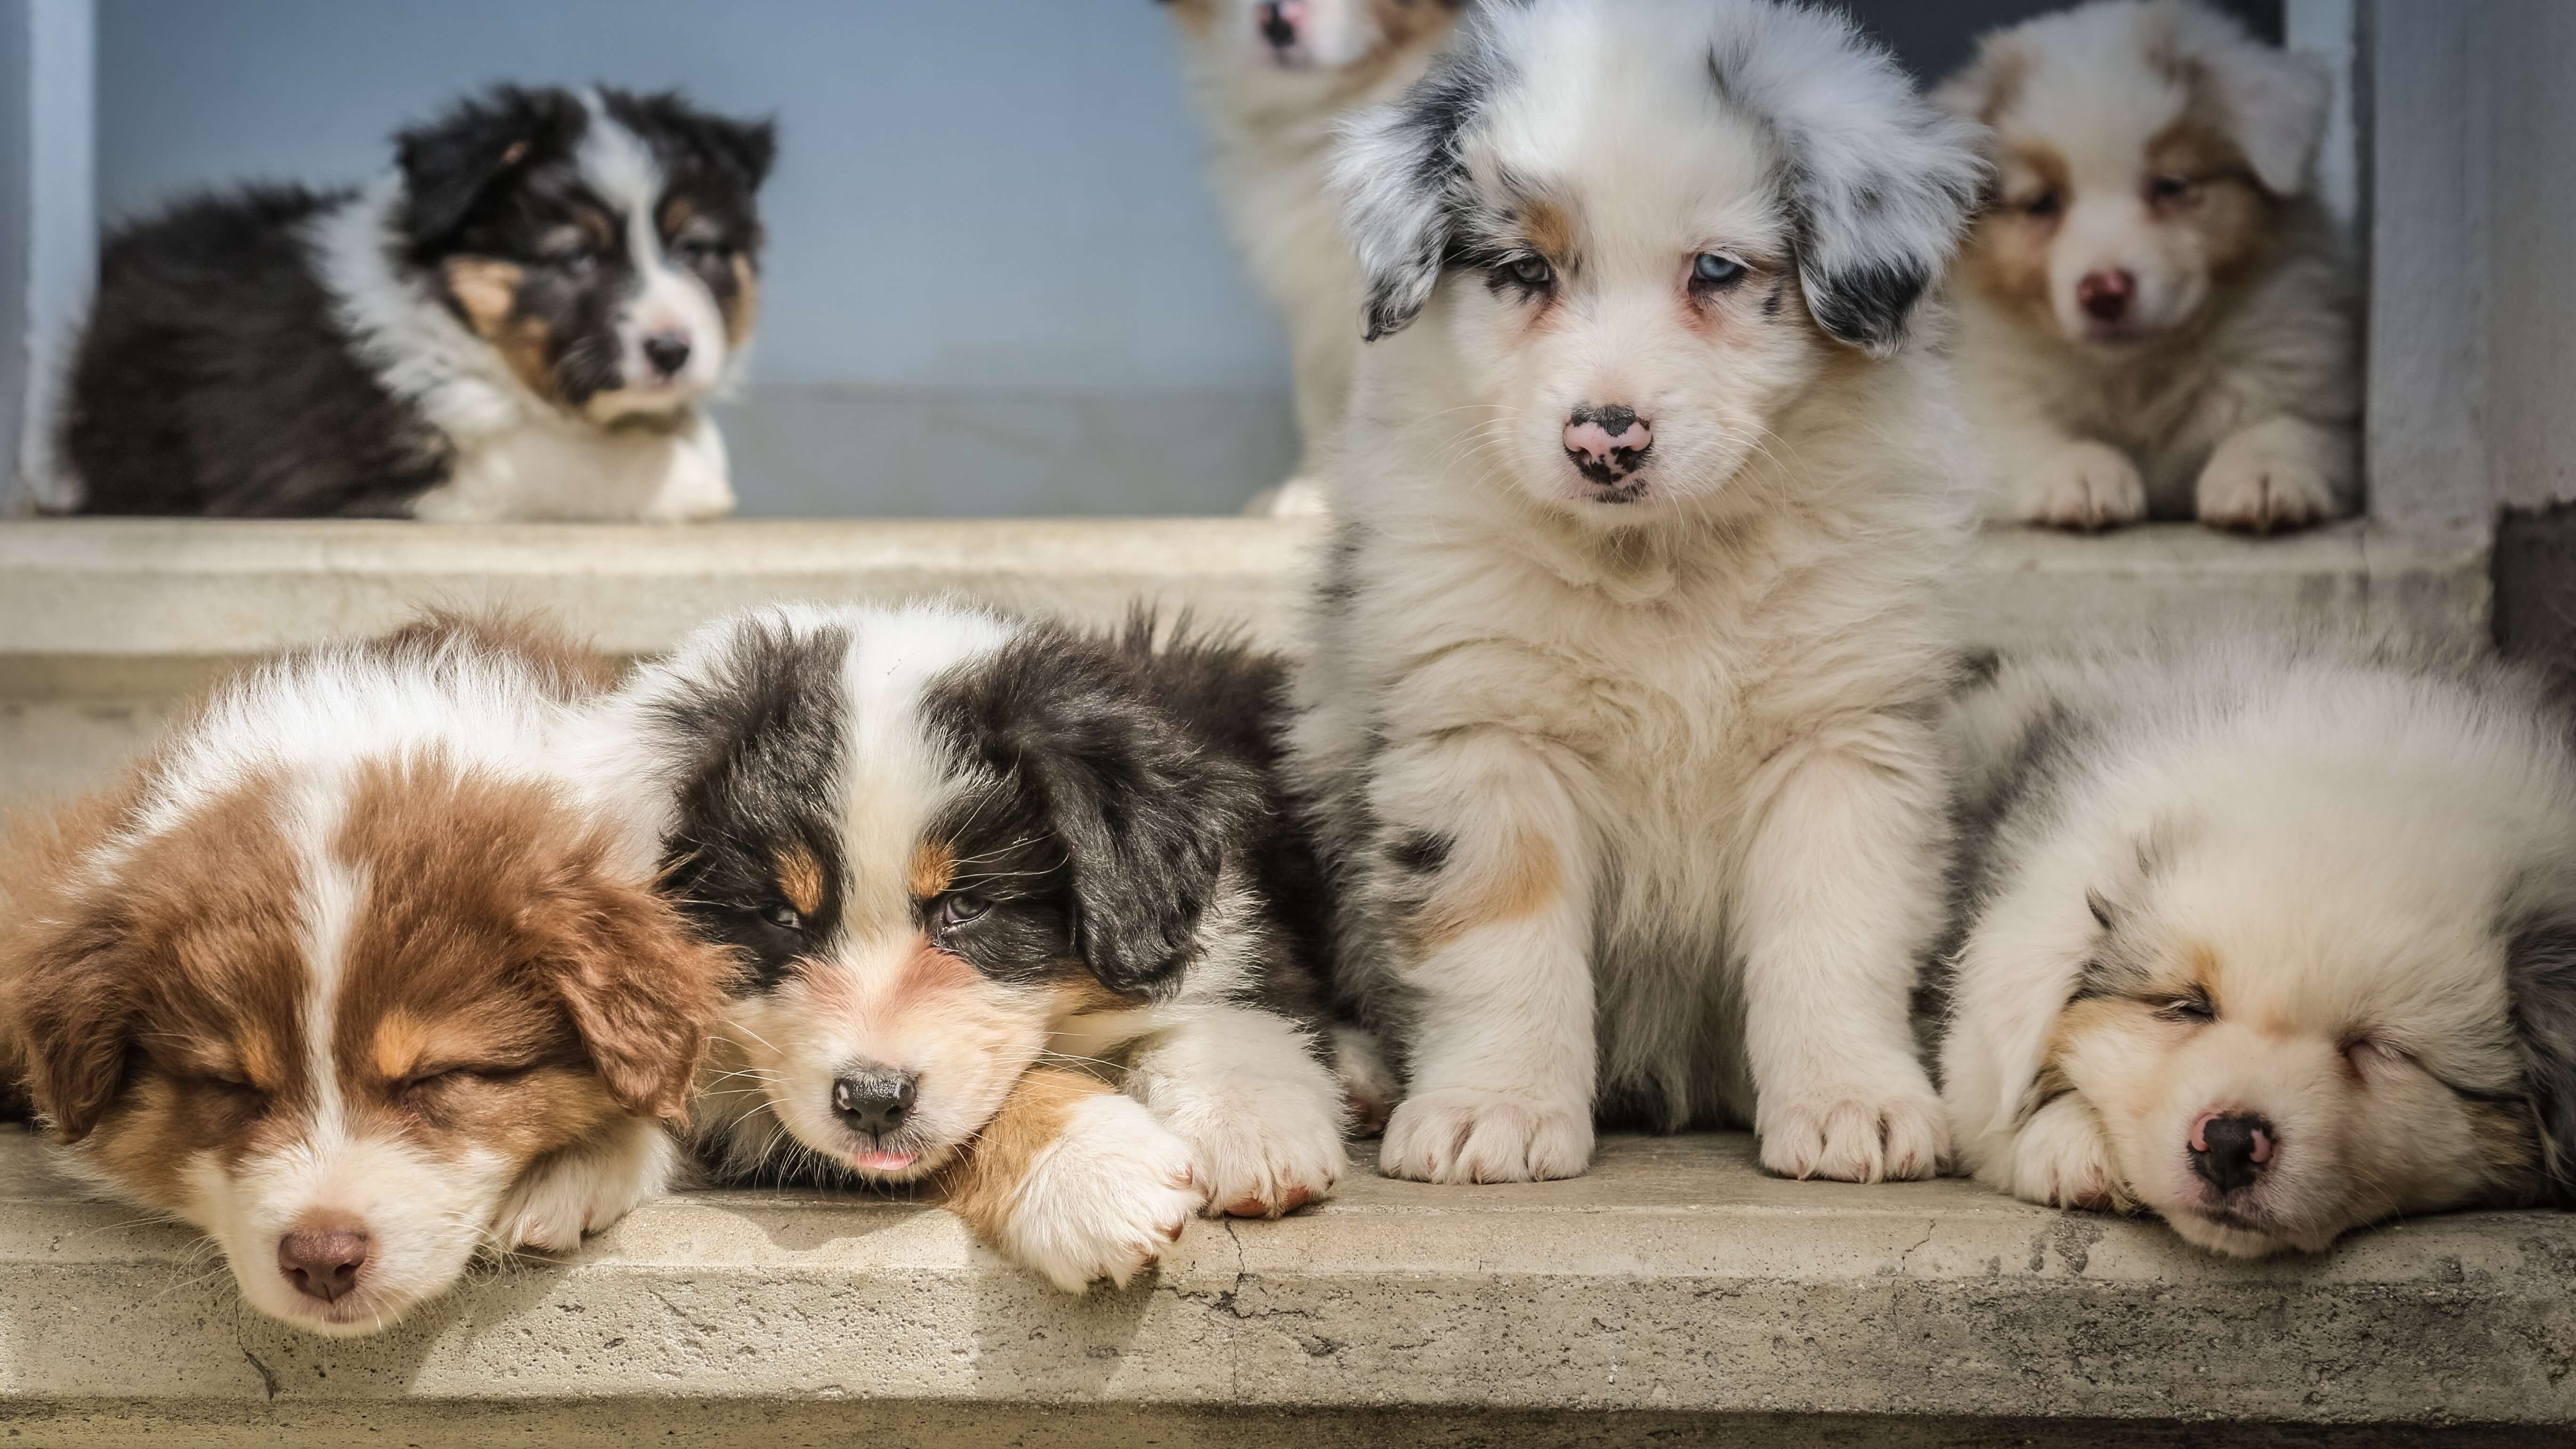 New UK Pet Legislation 'Lucy's Law' to Help End 3rd Party Puppy Mill Sales